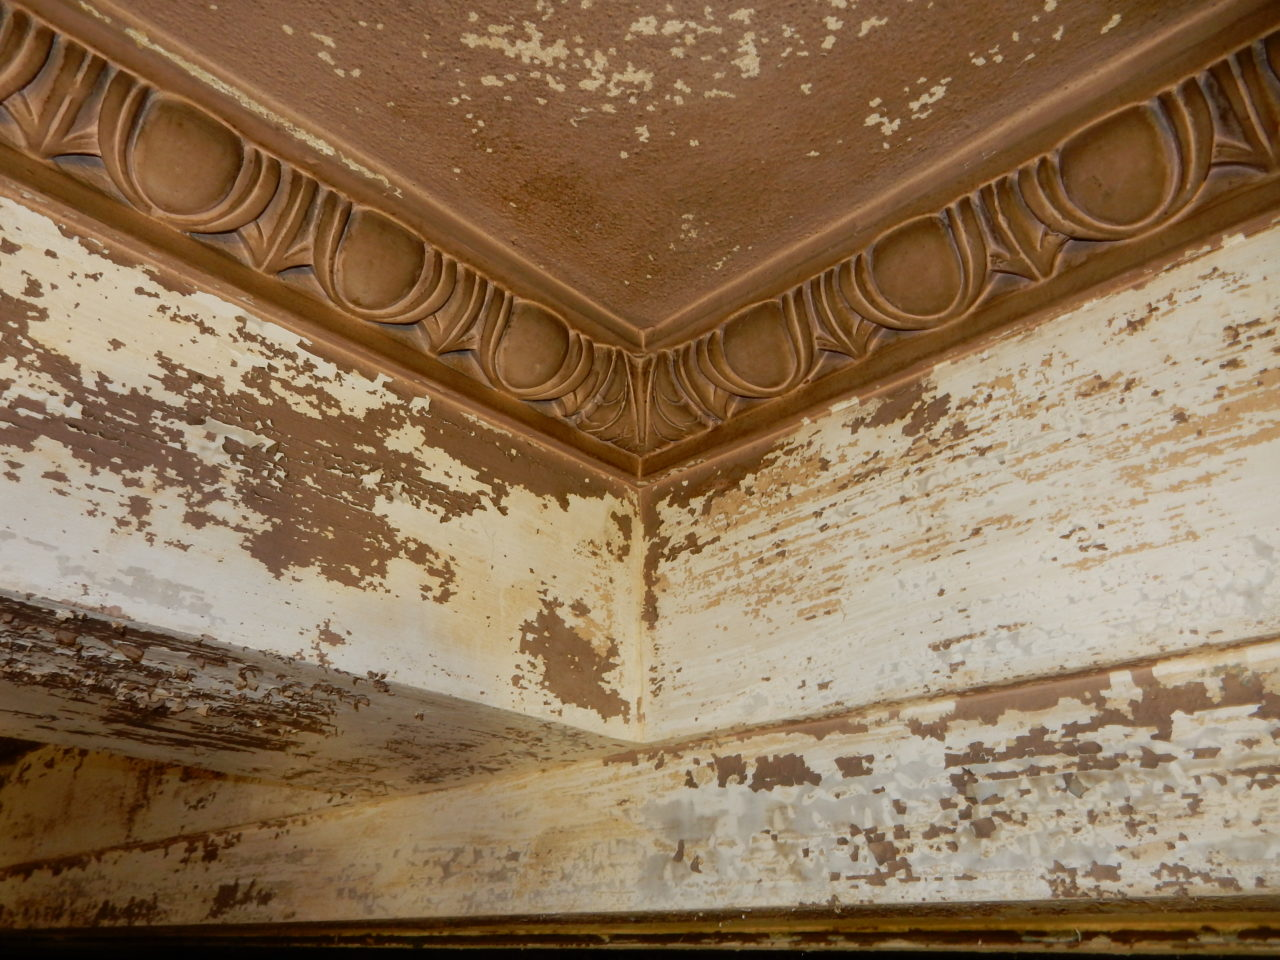 Wonderful examples of egg and dart moulding  border the ceiling